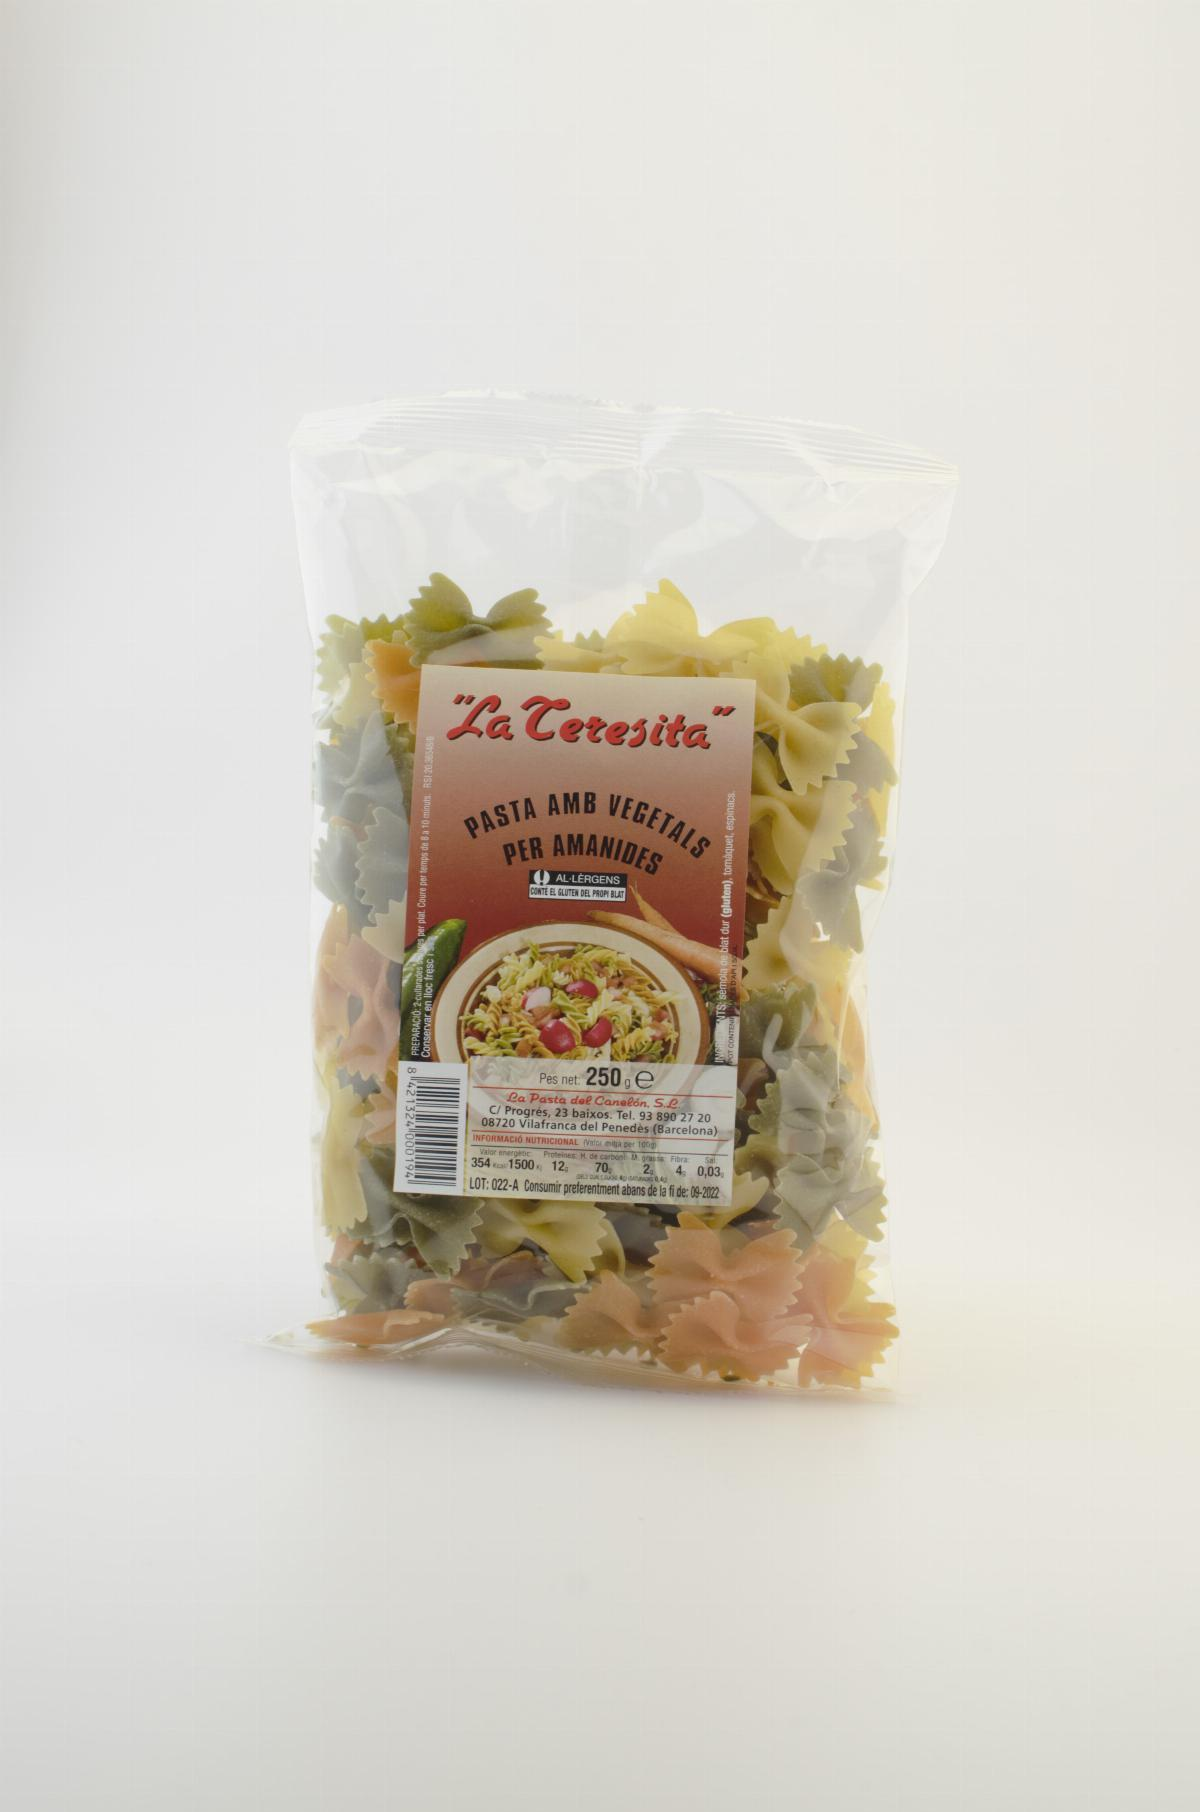 Pasta - La Teresita farfalle Pasta 3 colours with vegetables 250g - Mestral Cambrils